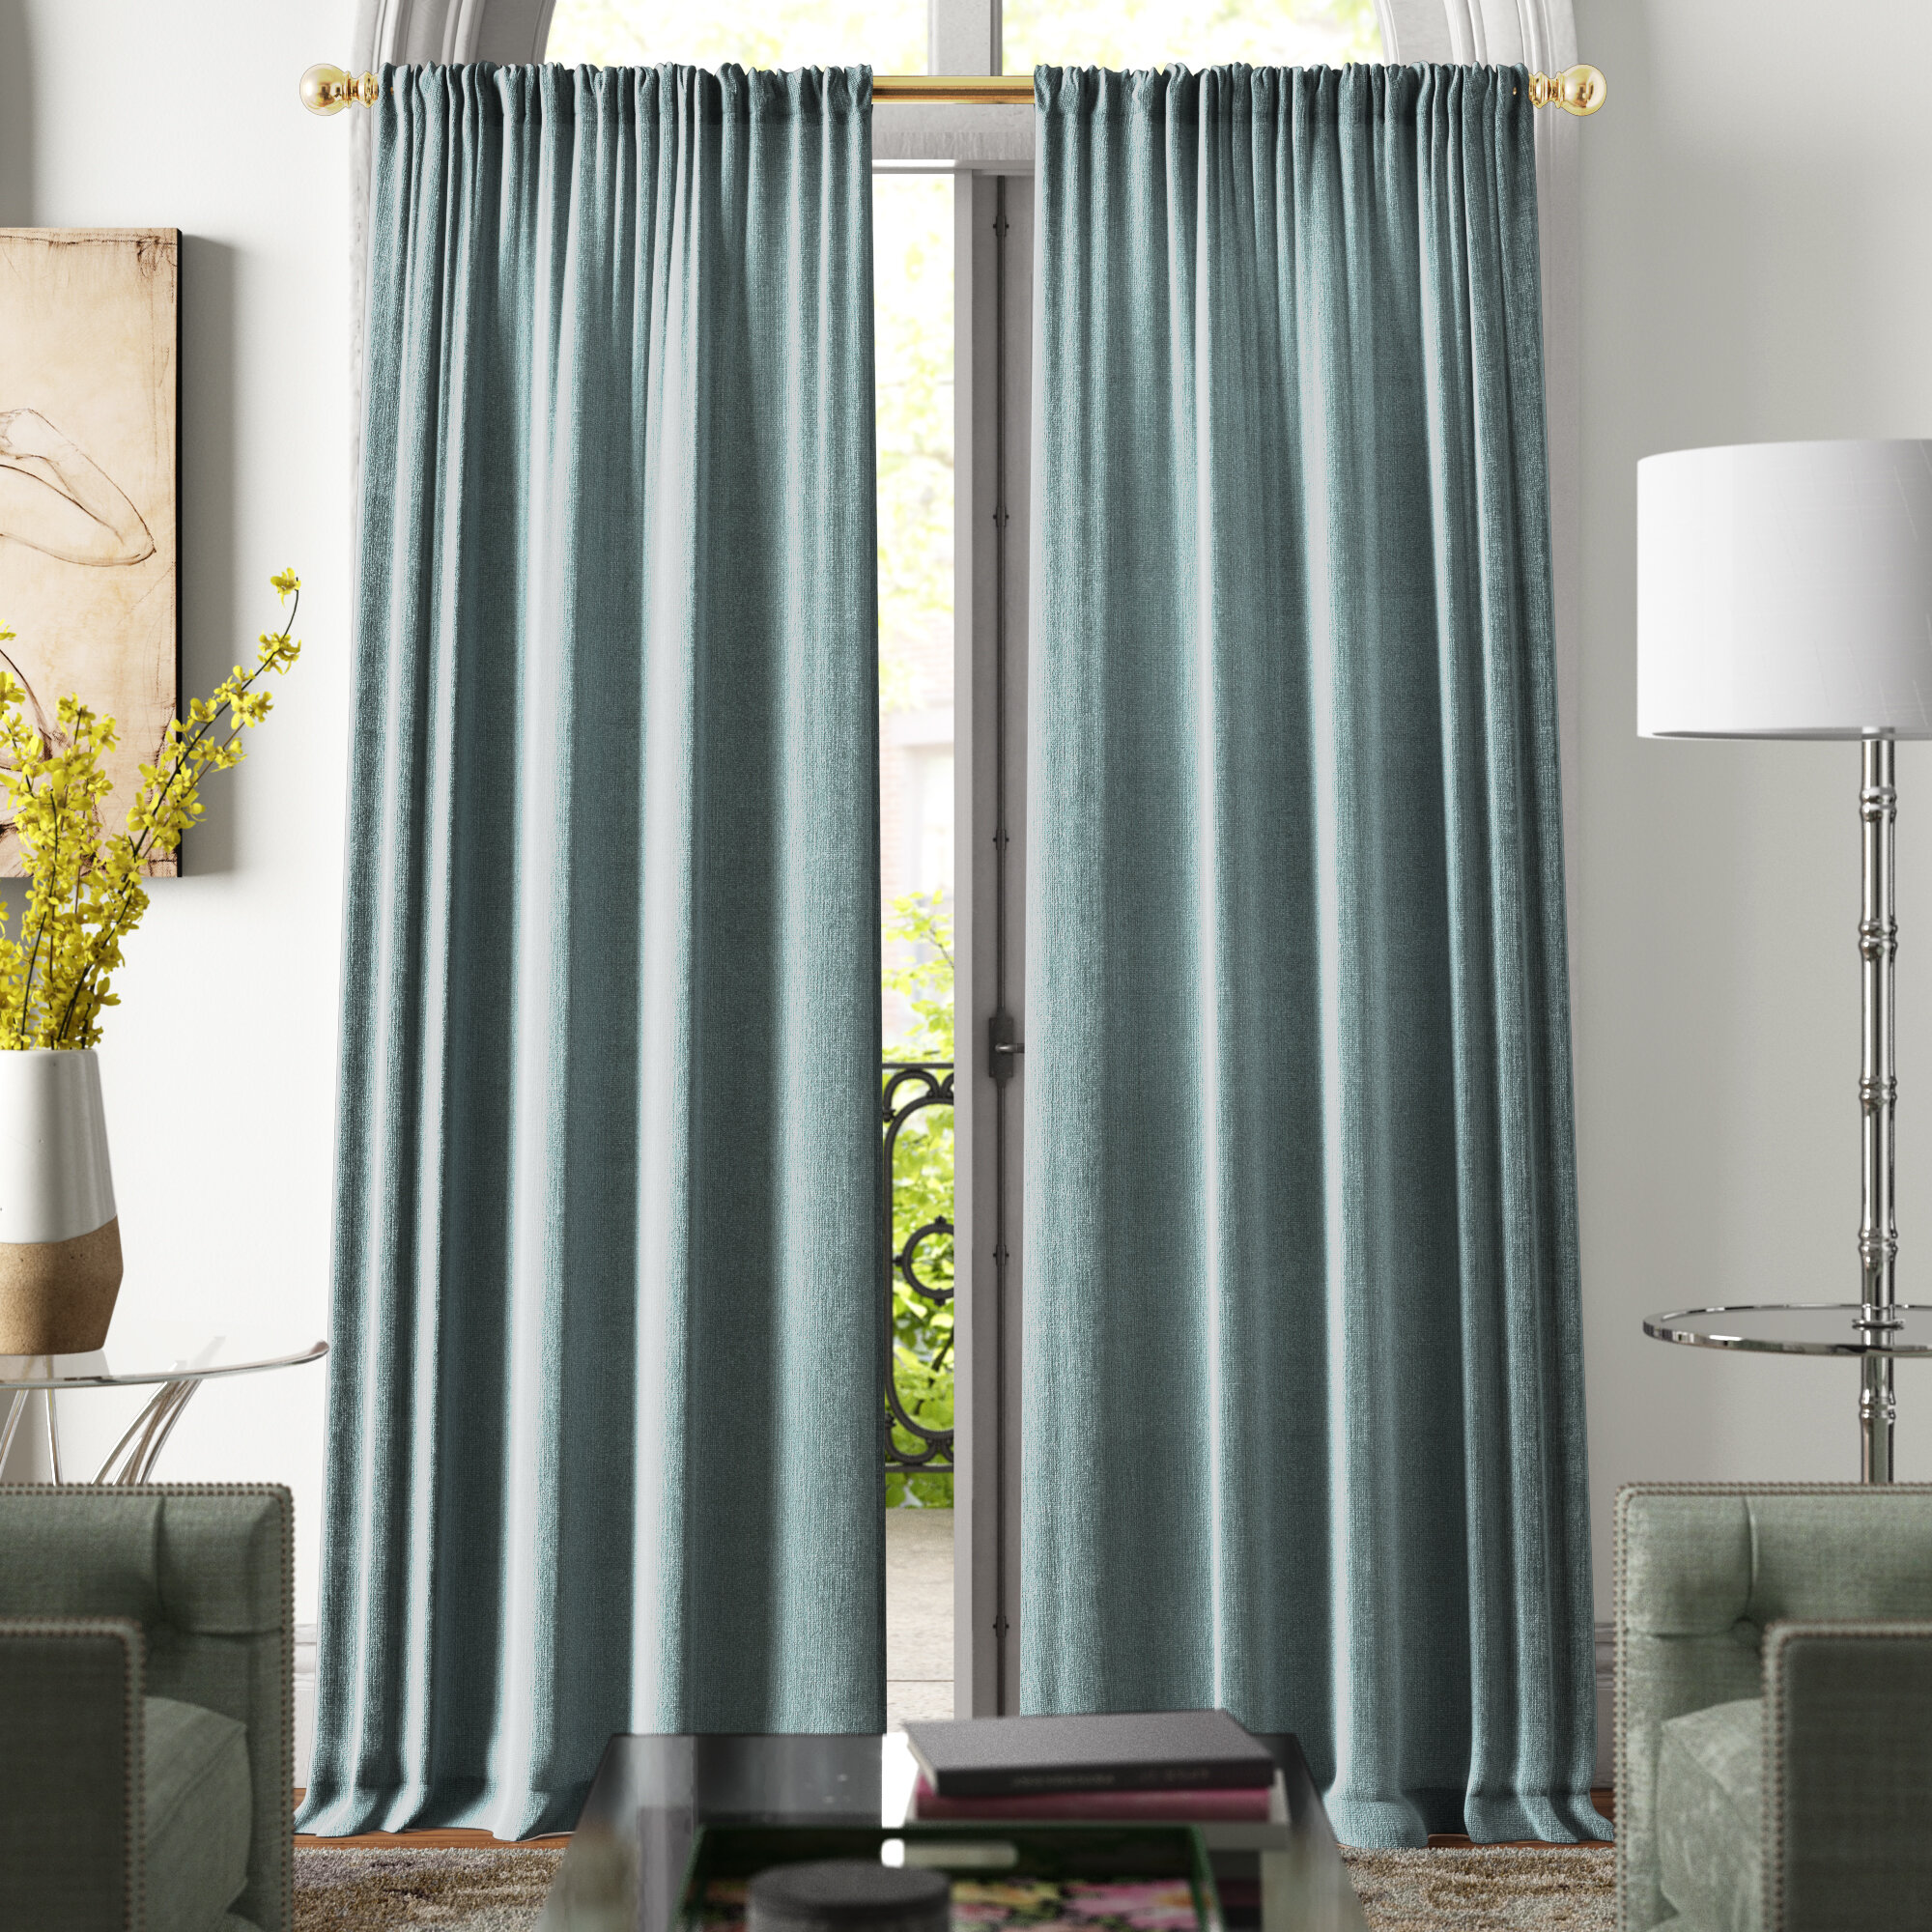 Home Garden Curtains Drapes Valances Teal Solid Contemporary 100 Blackout Window Curtain Drapes Rod Pocket Panel